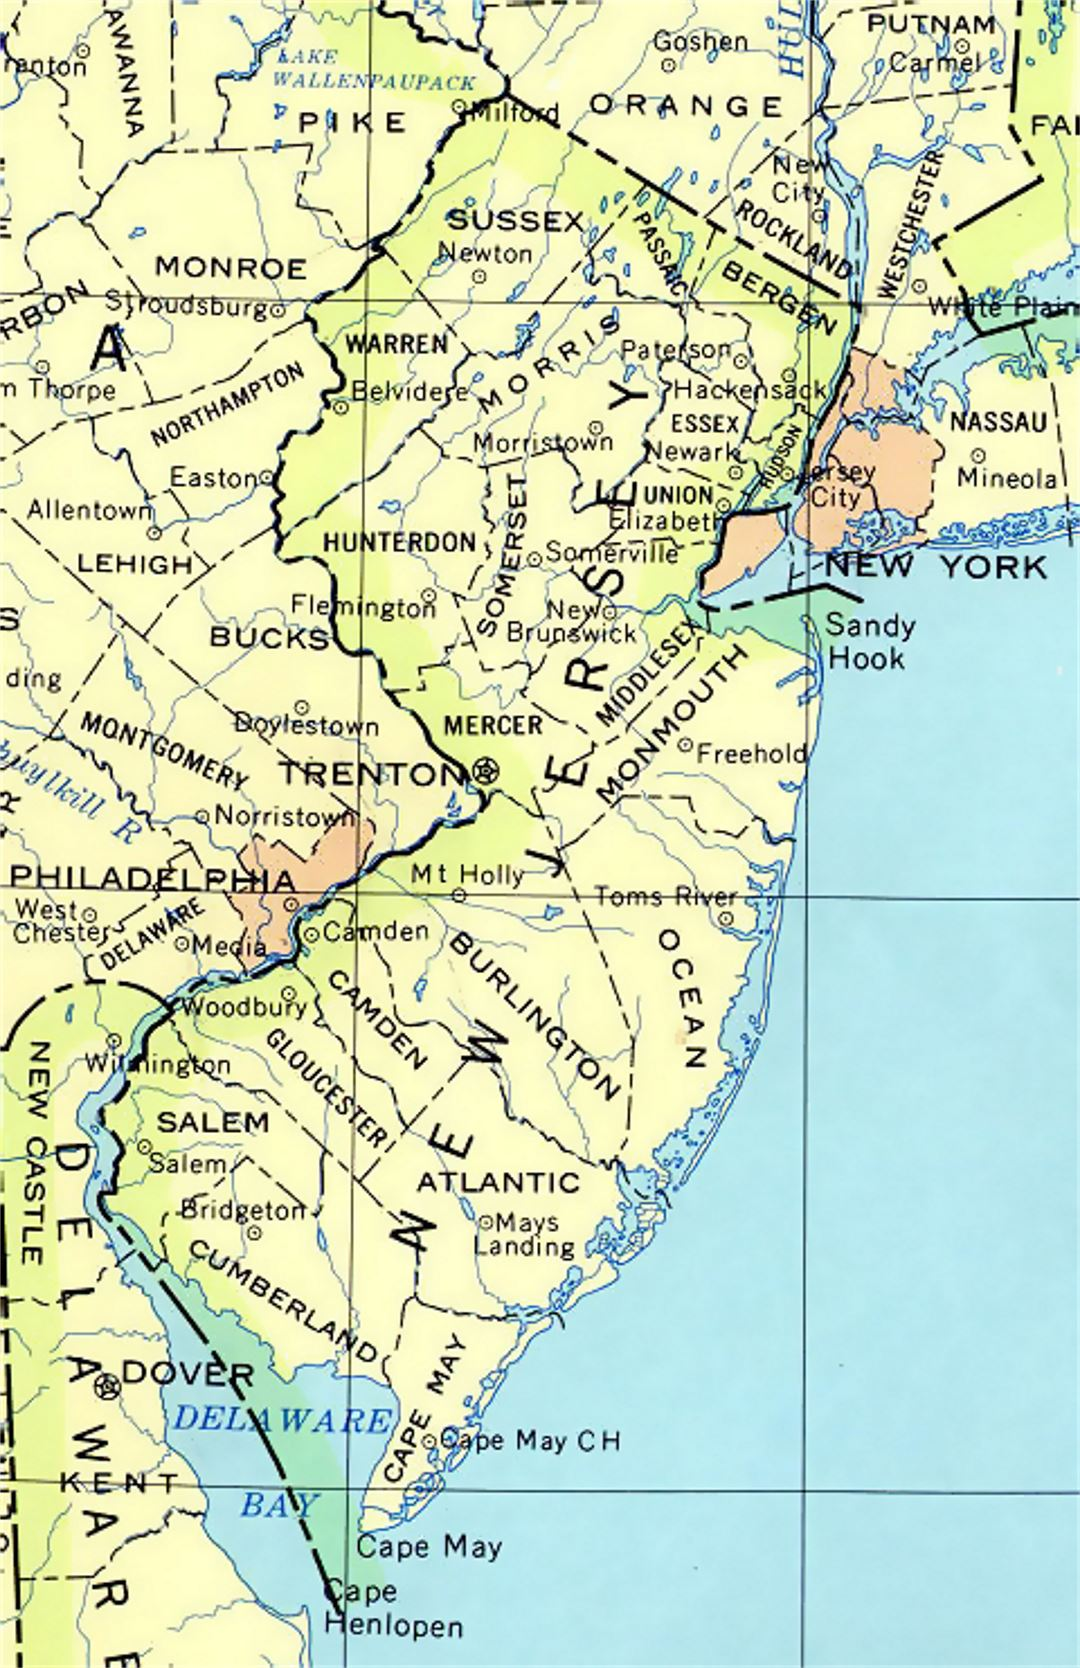 Administrative map of New Jersey state